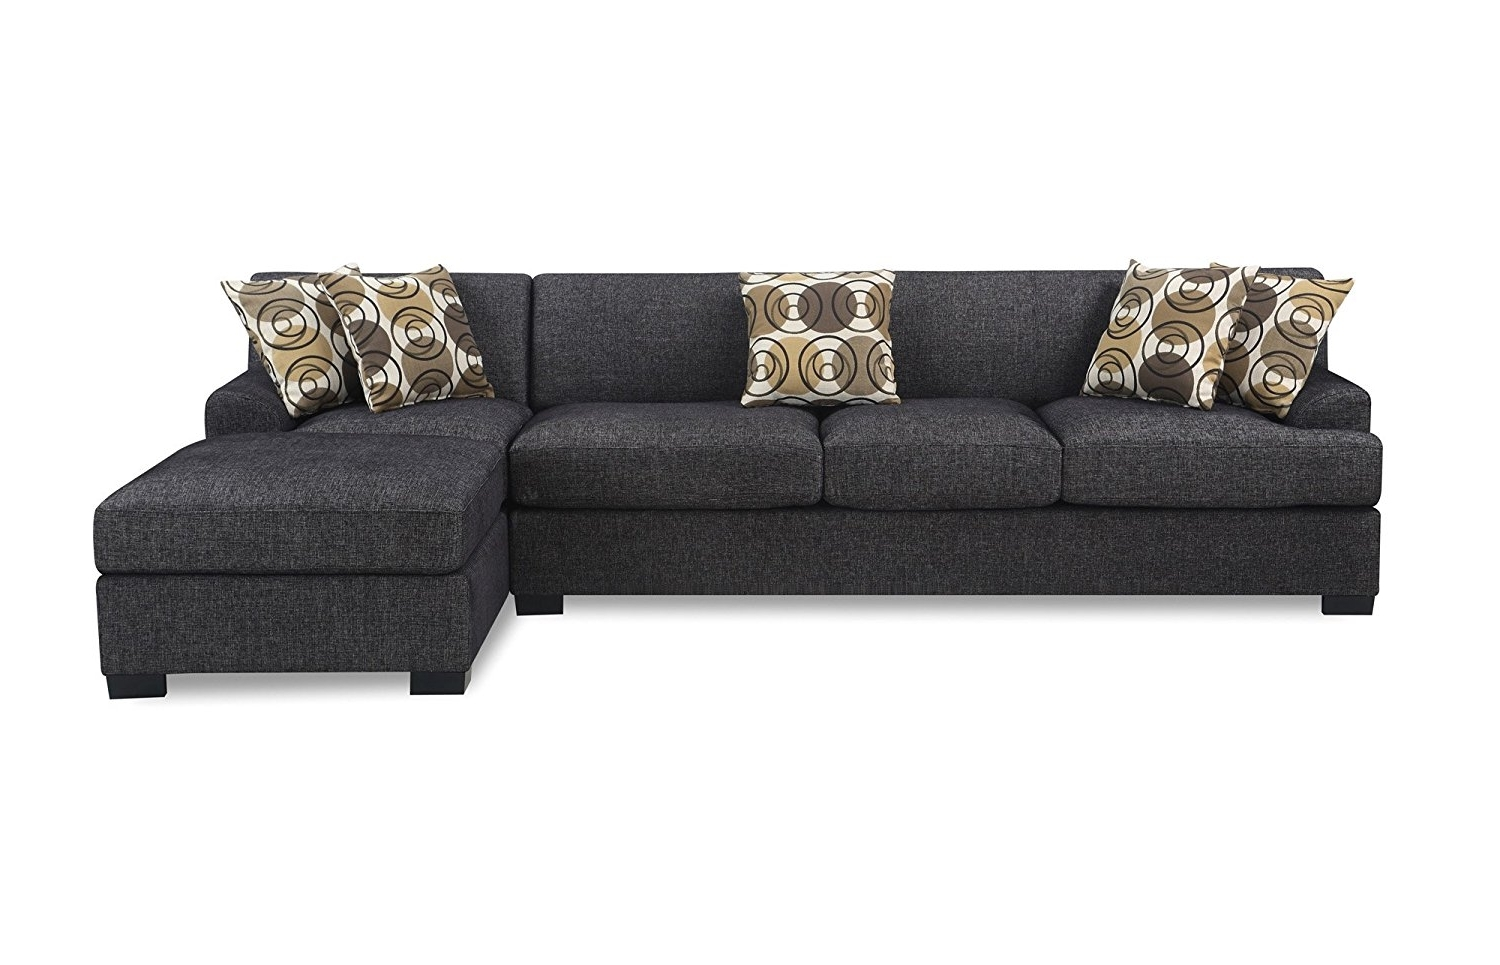 Amazon: Bobkona Poundex Benford Collection Faux Linen Chaise Regarding Favorite Couches With Chaise (View 2 of 15)